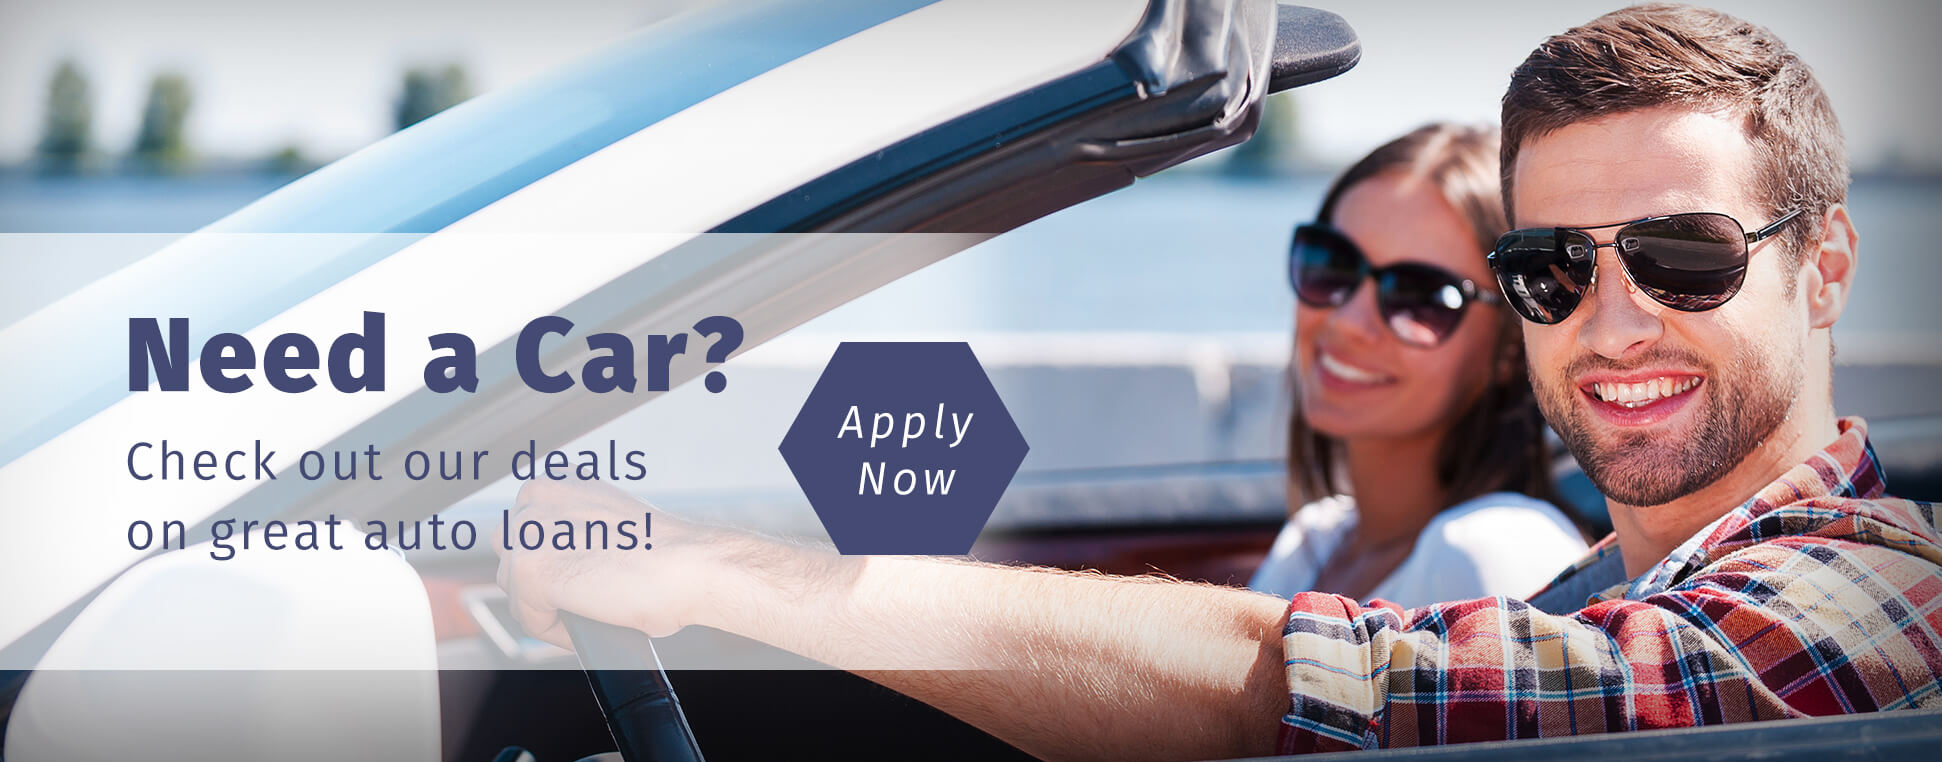 Need a Car? Check out our deals on great auto loans! Apply Now